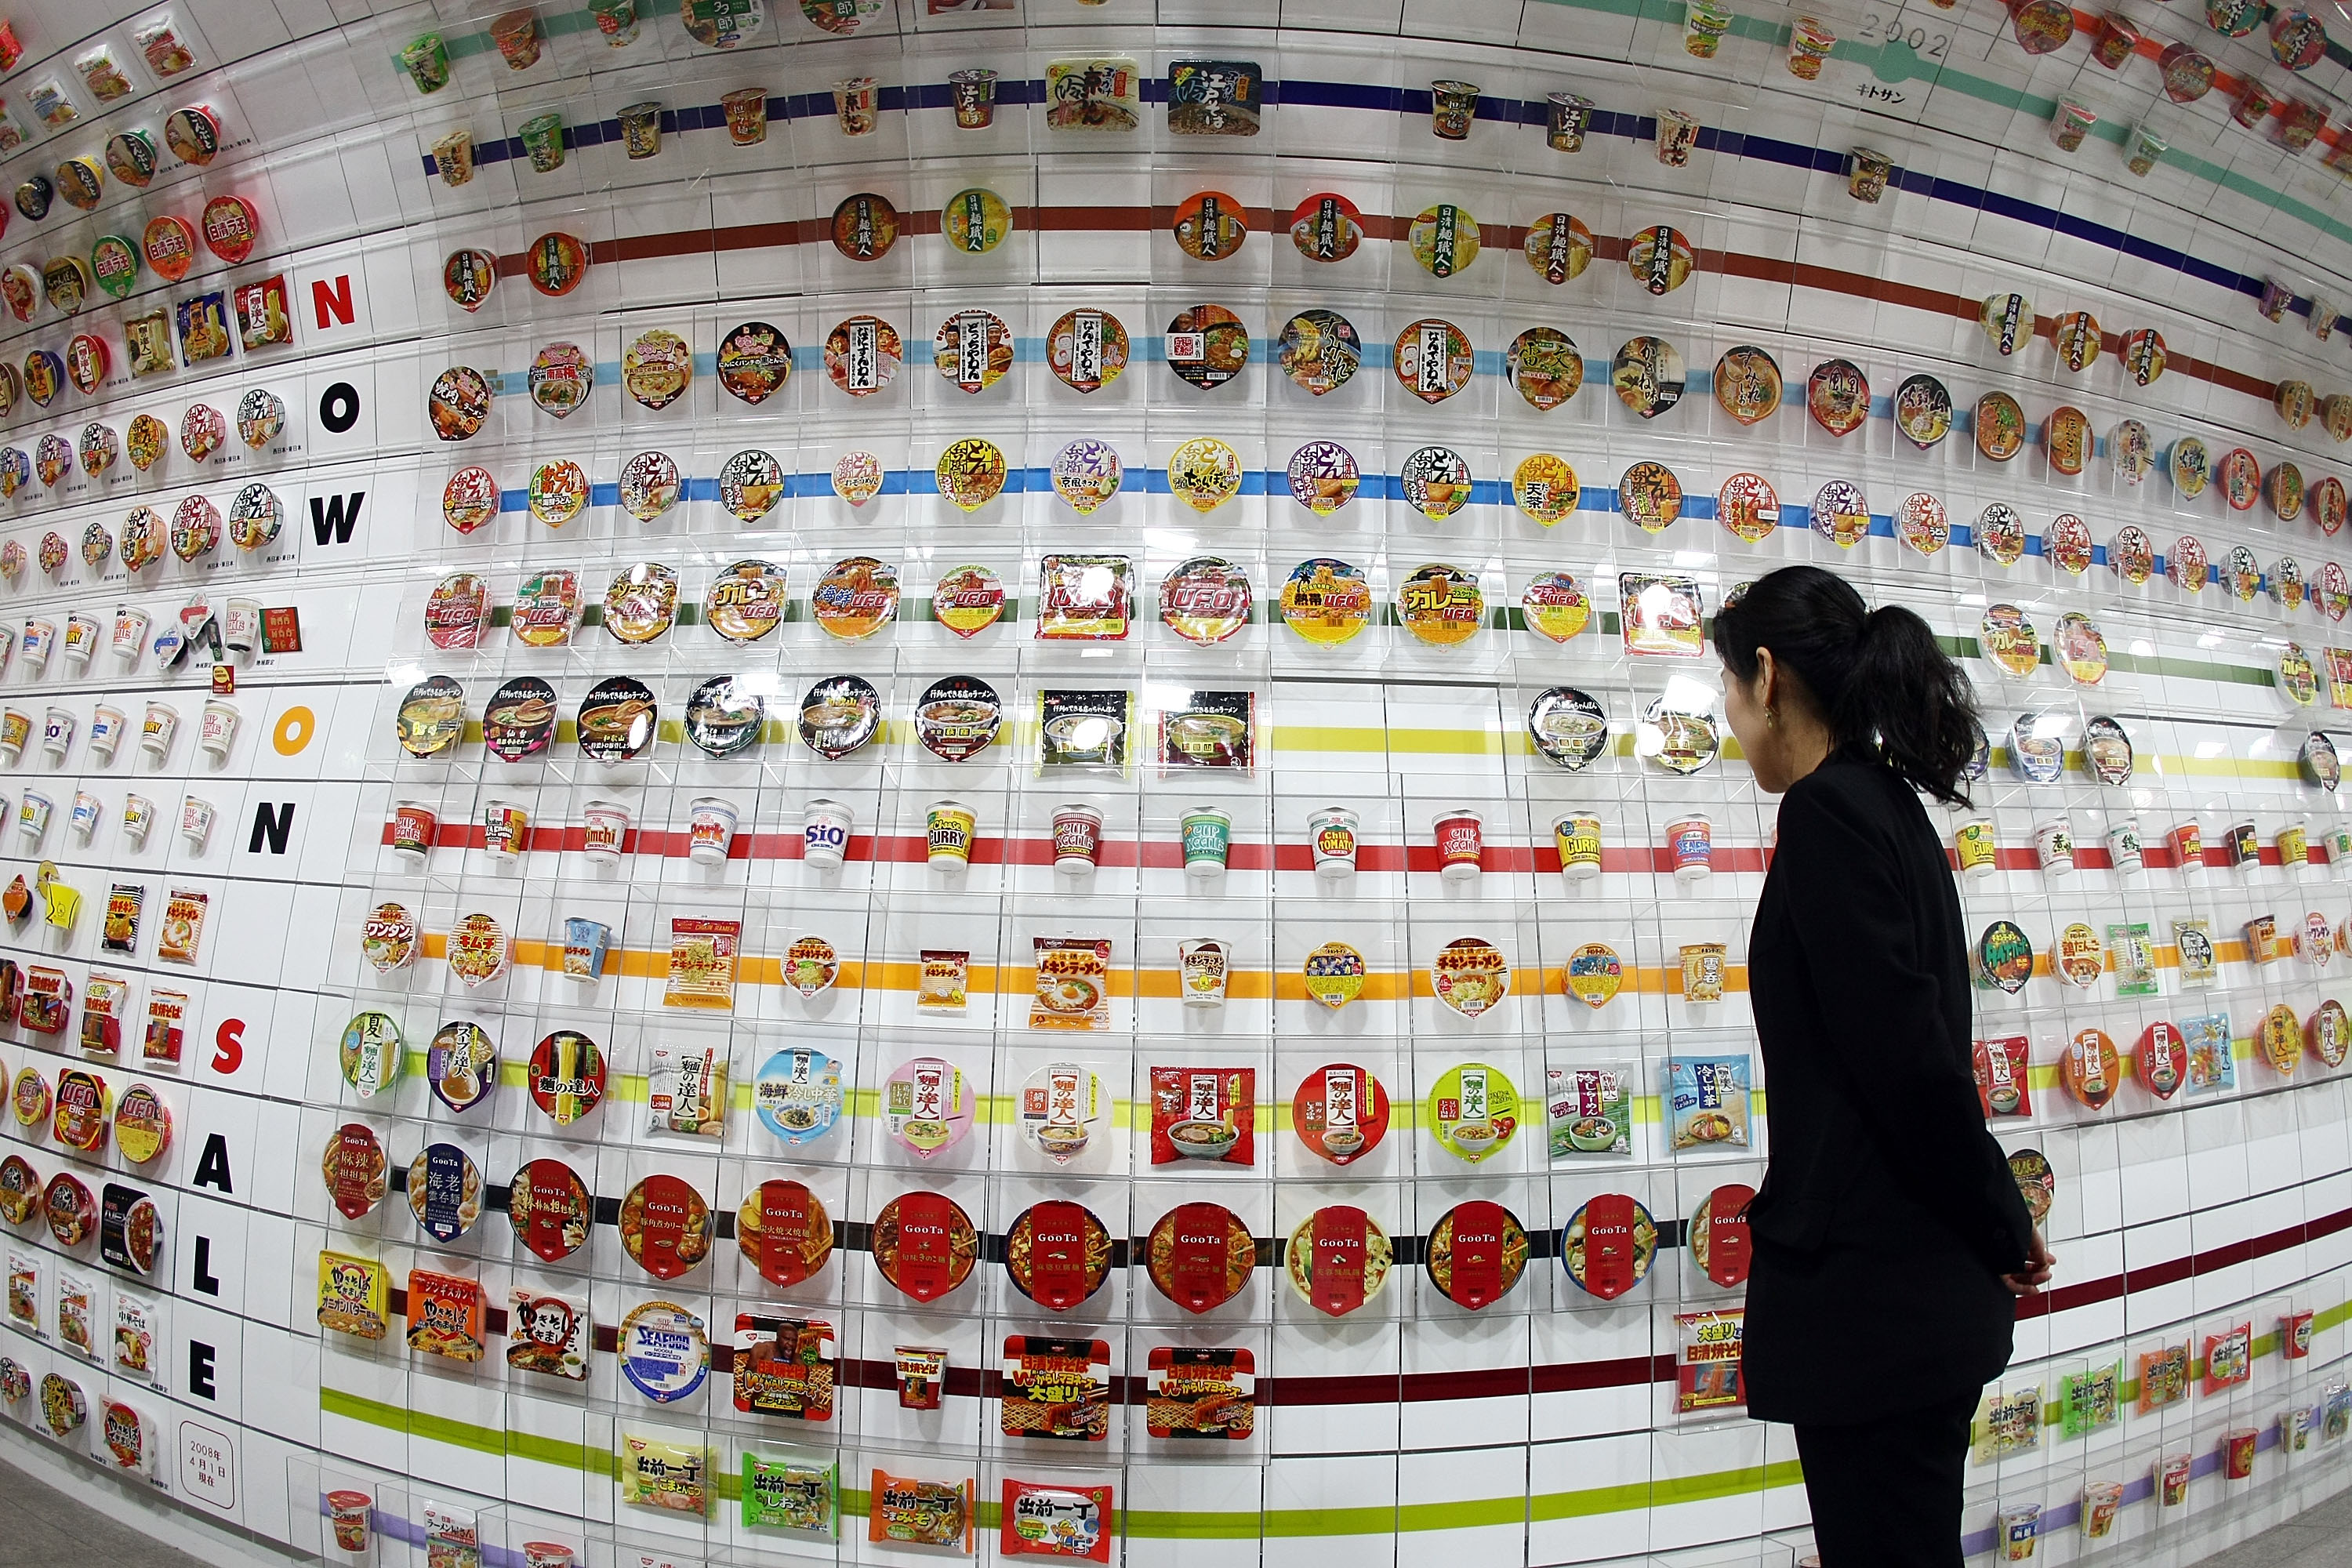 Instant cup noodles are on display at the Instant Ramen Museum on April 8, 2008 in Osaka, Japan.